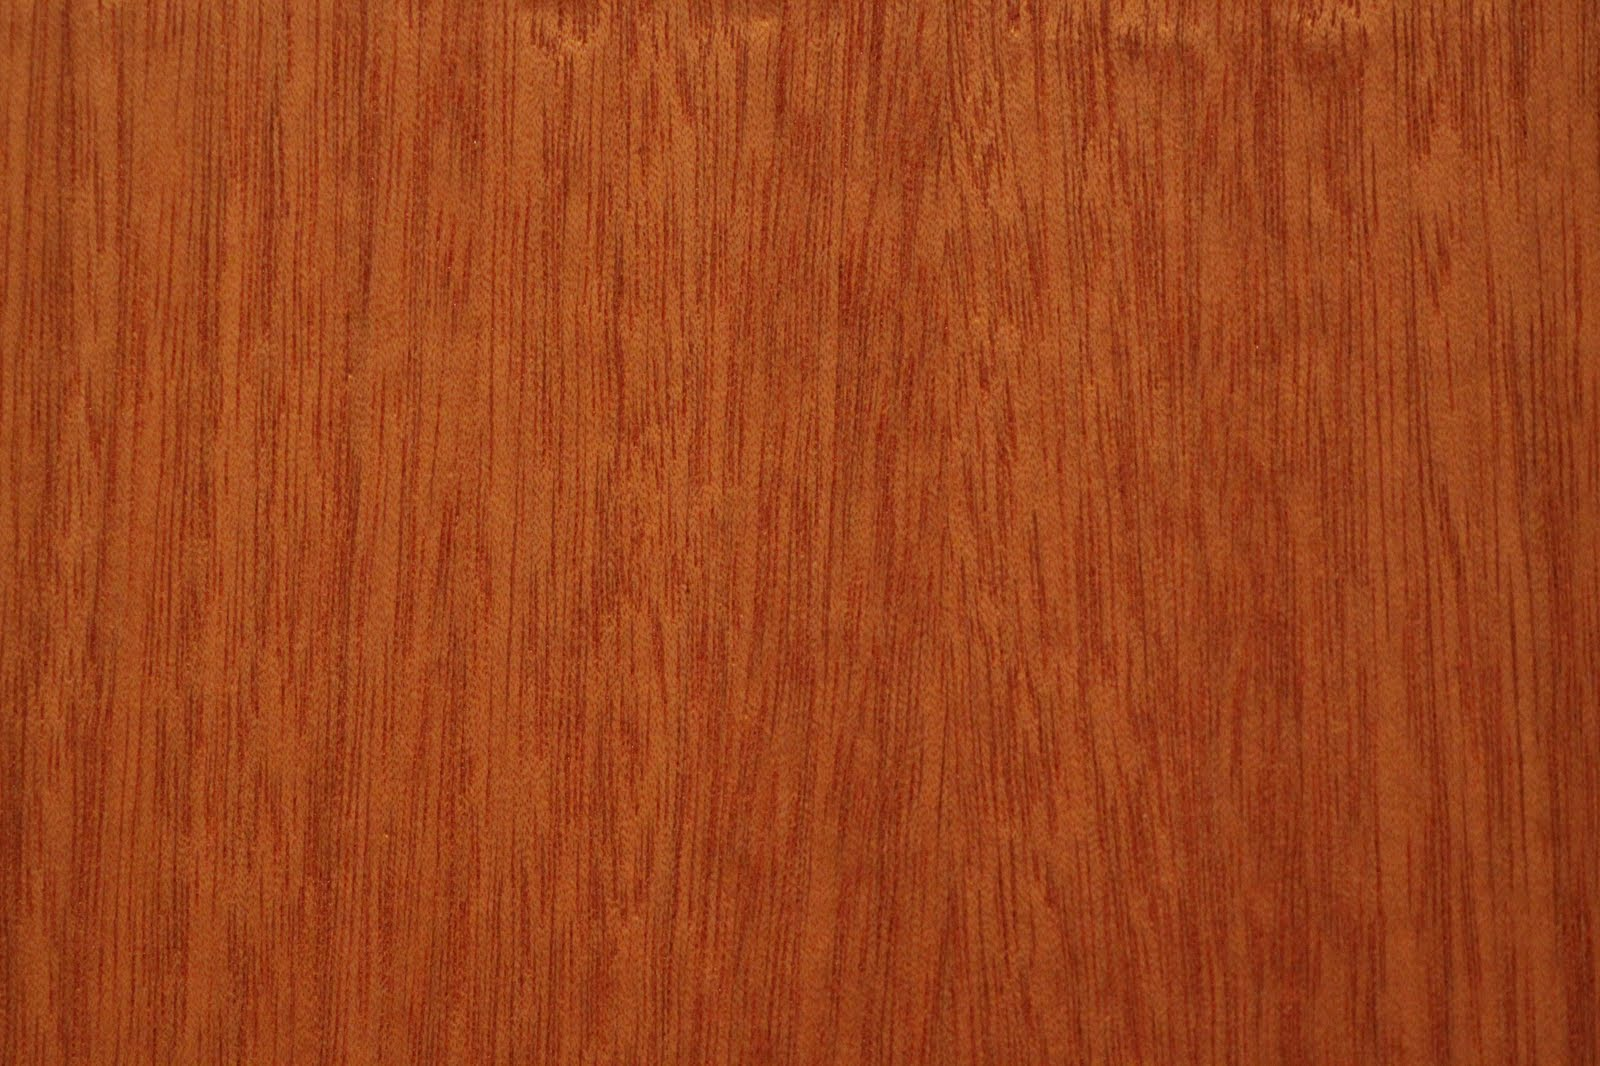 Wooden Texture Wood: Etiketter: Wood ...